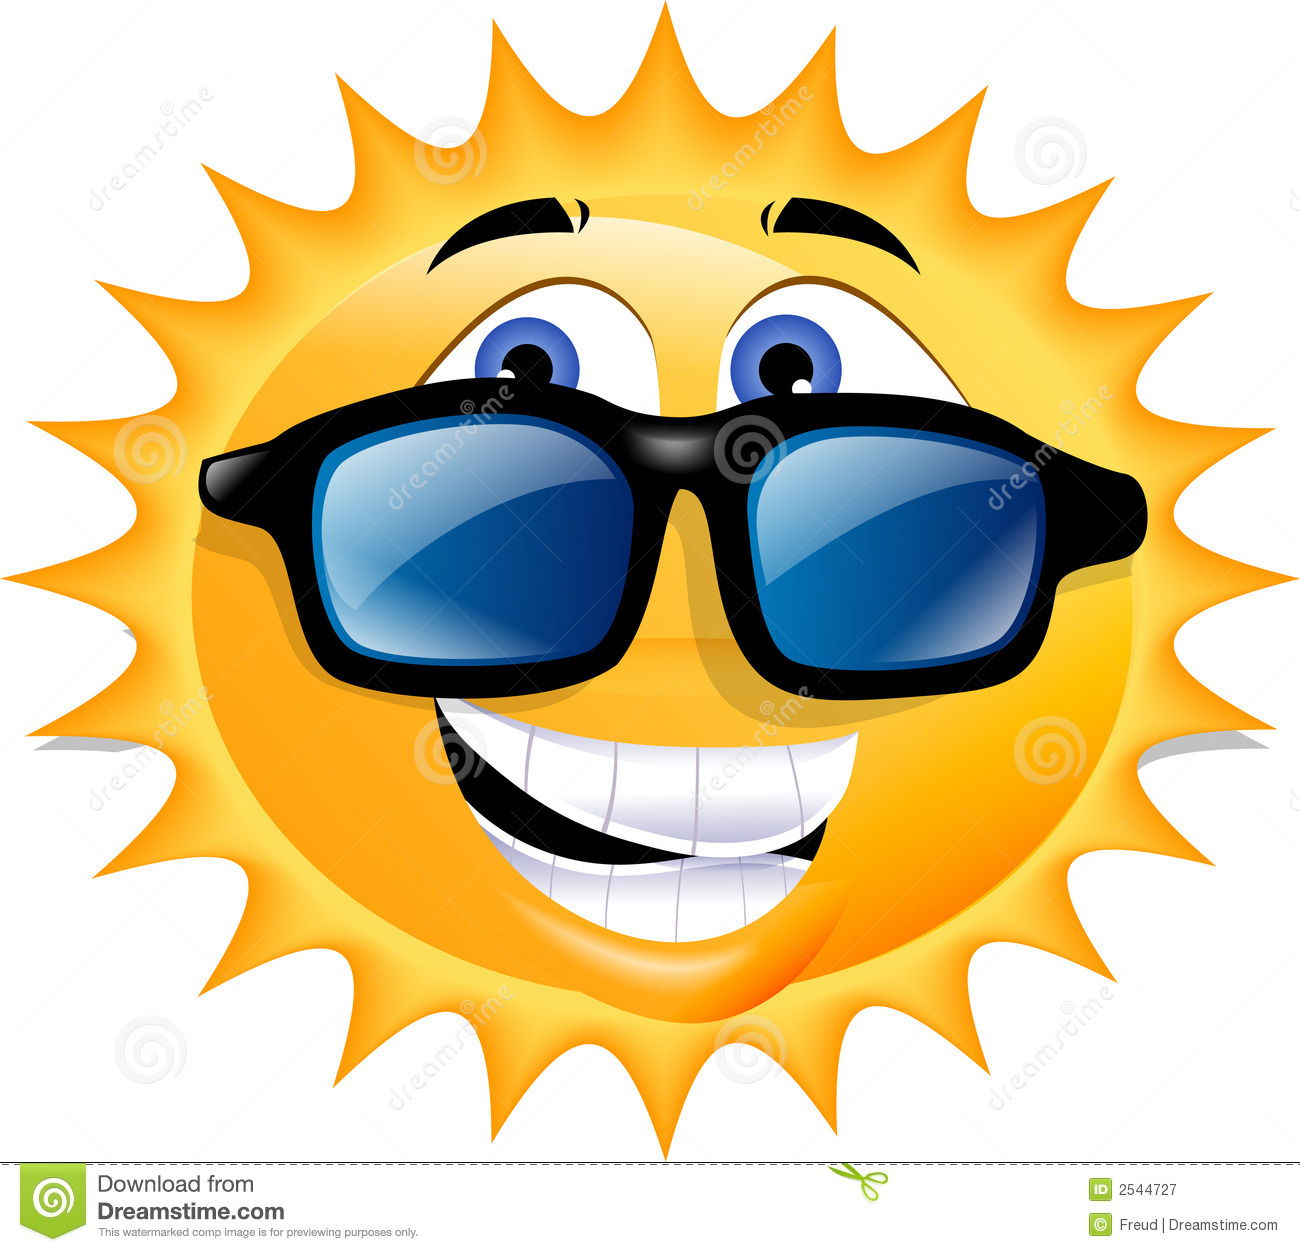 smiling%20sun%20clipart%20royalty%20free